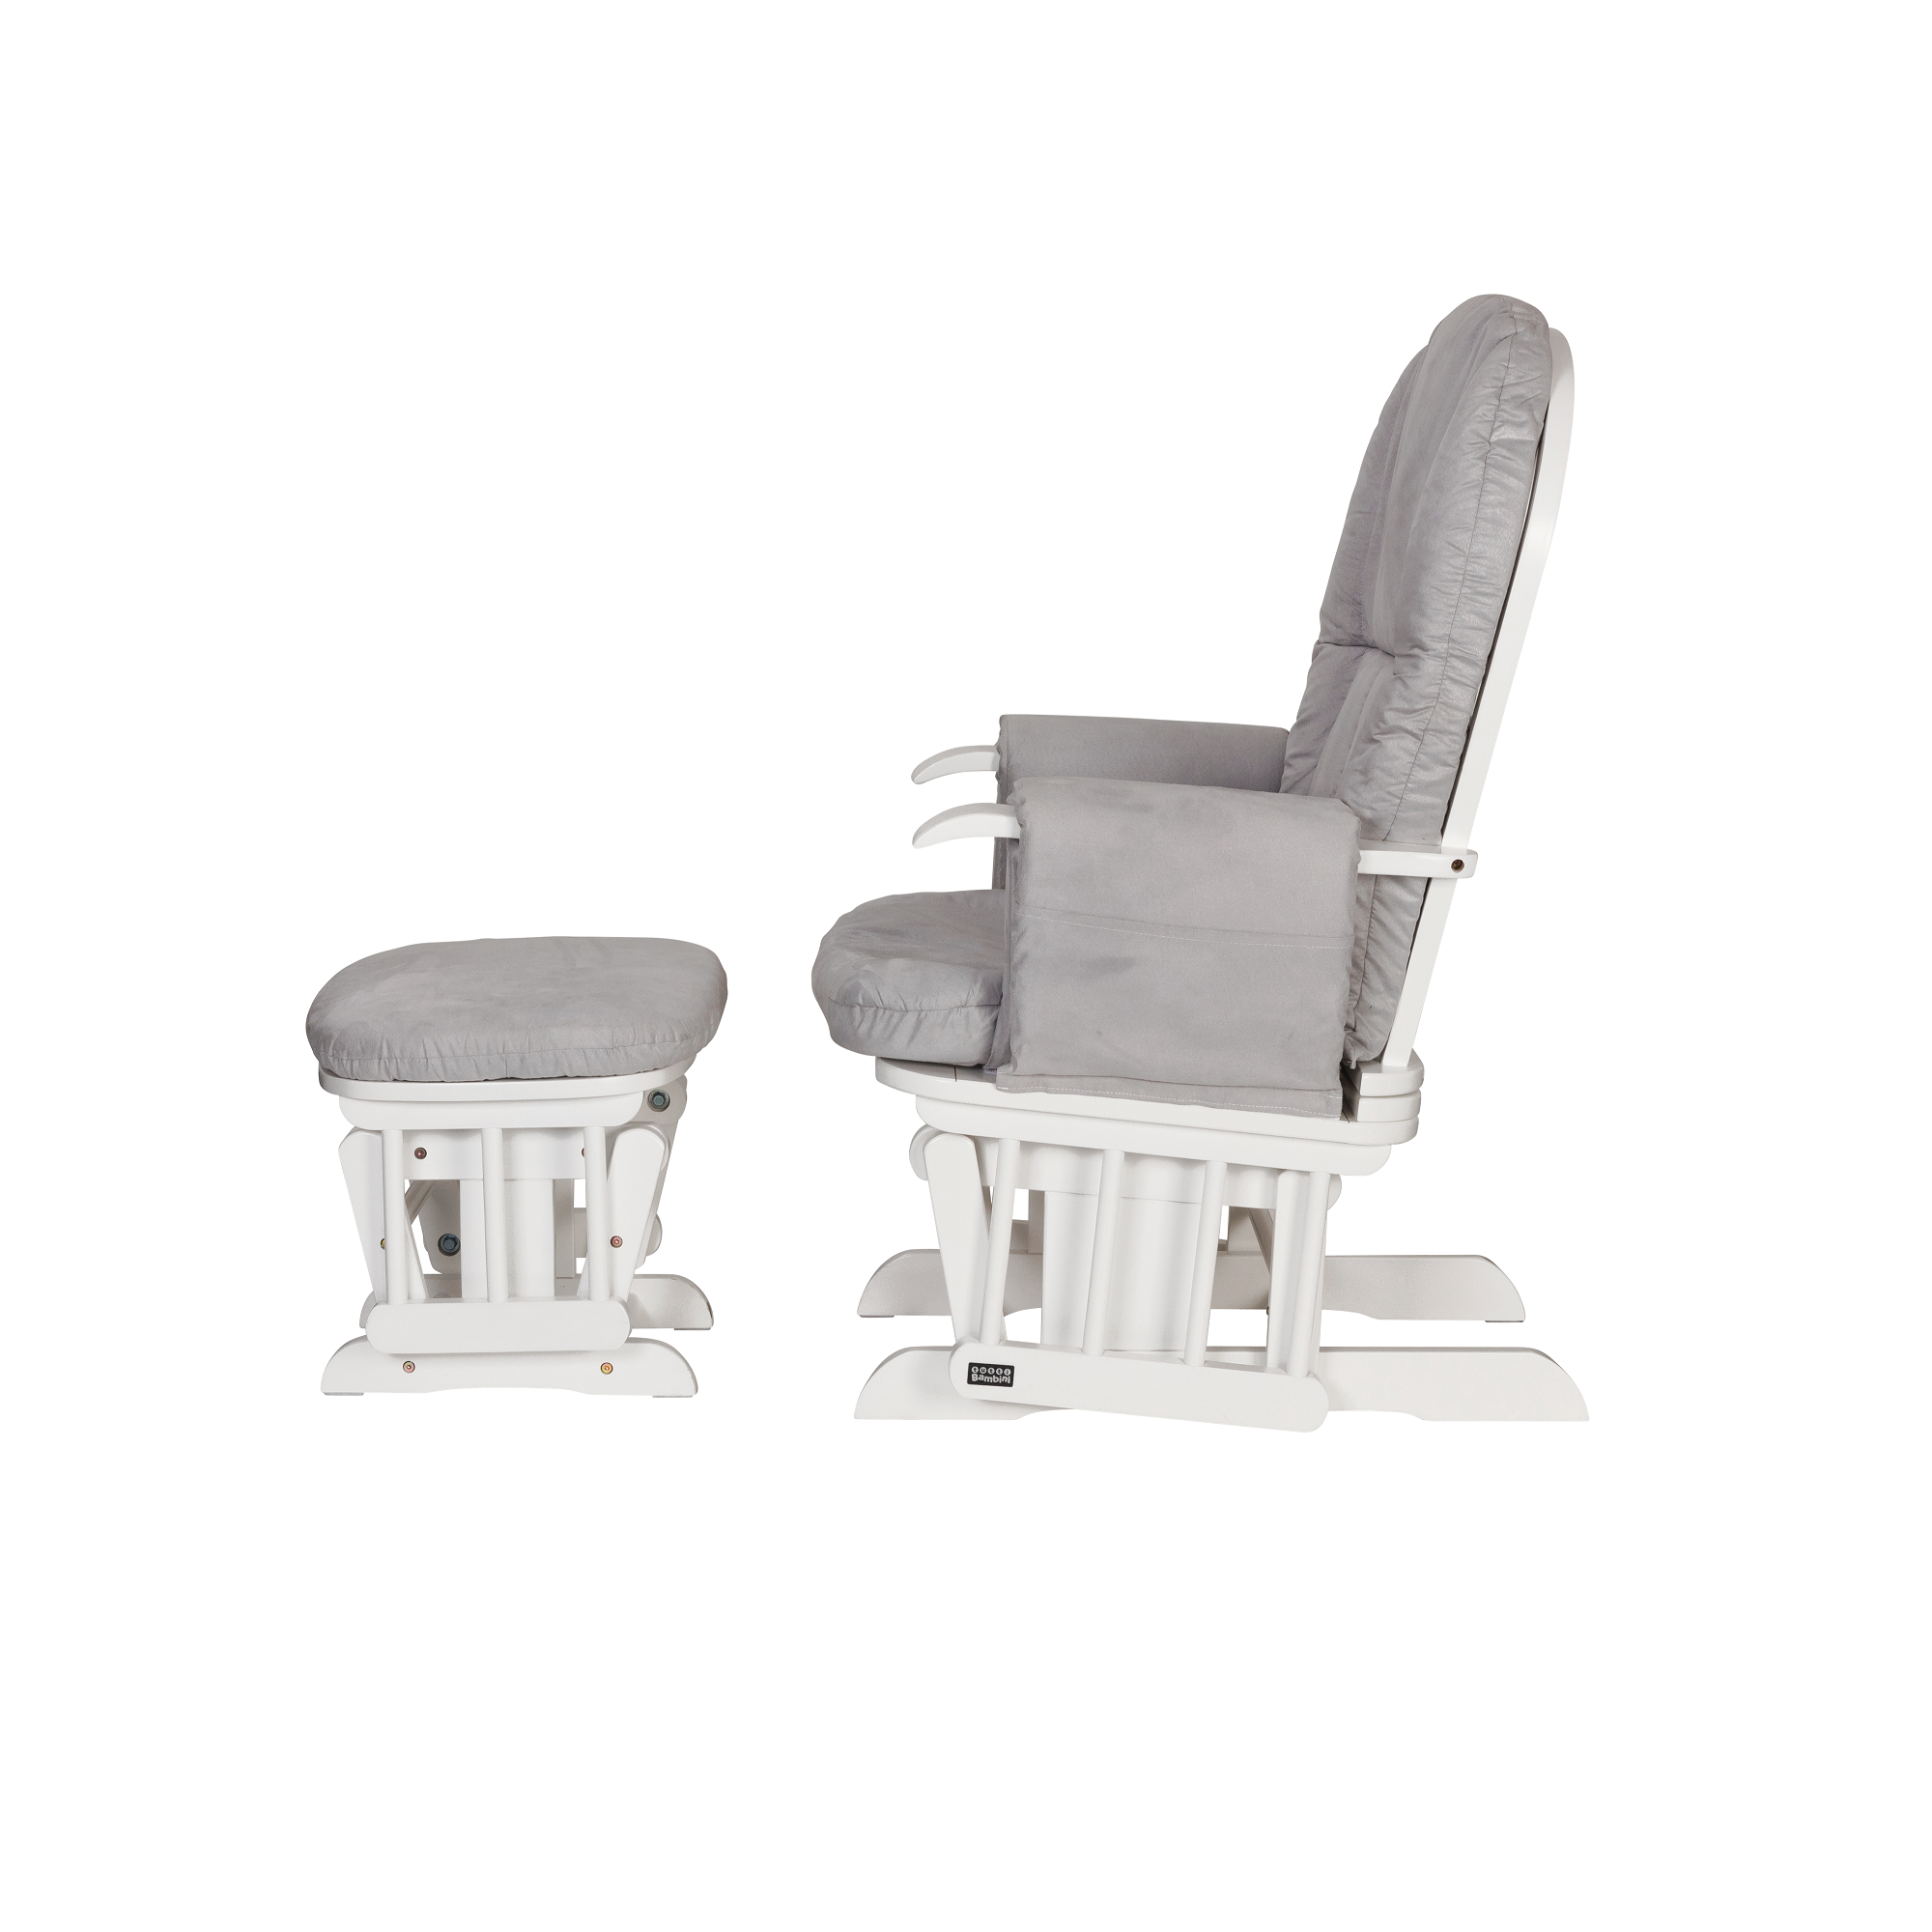 competitive price c5106 41229 Tutti Bambini GC35 Reclining Glider Chair and Stool - White with Grey  Cushions